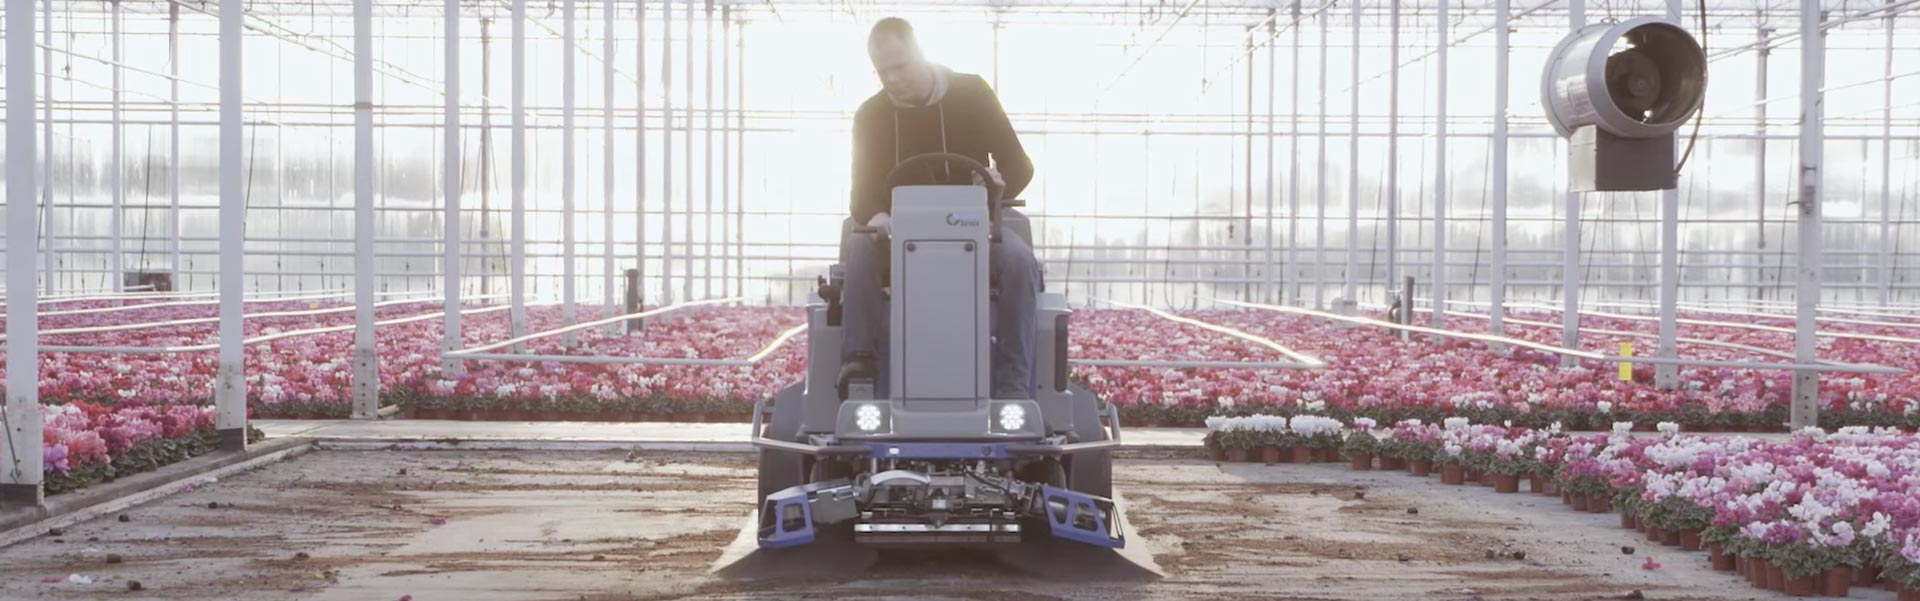 Stefix 135 ground cover sweeper commercial